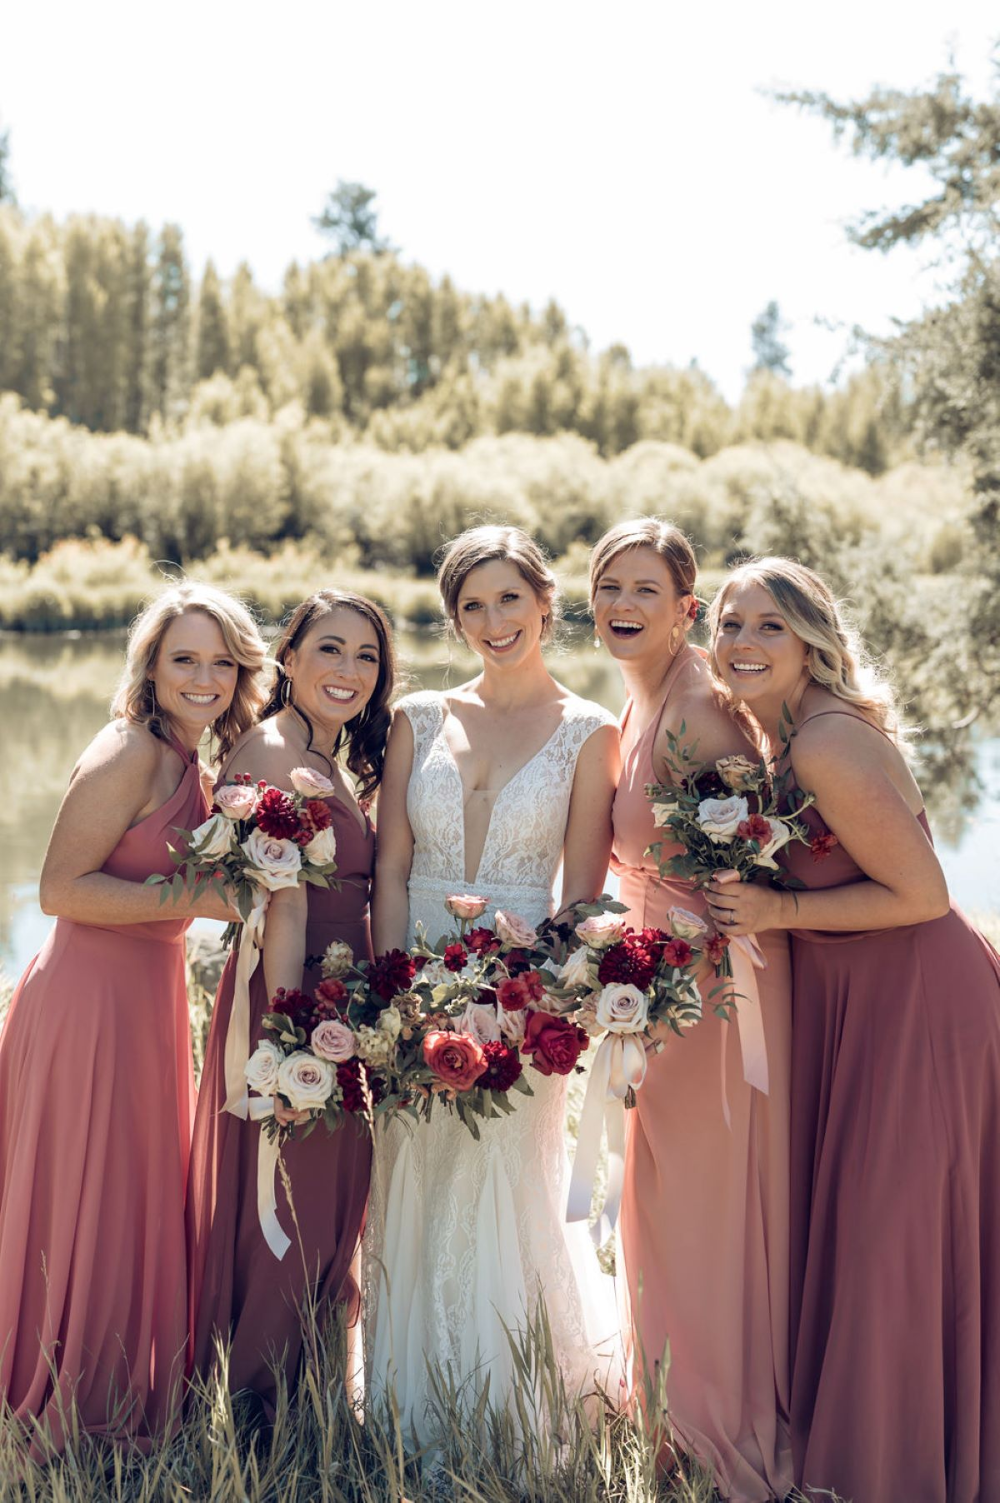 A Picturesque Lakeside Wedding Amongst The Trees In 2021 Blush Colored Bridesmaid Dresses Lakeside Wedding Blush Wedding Colors [ 1503 x 1000 Pixel ]